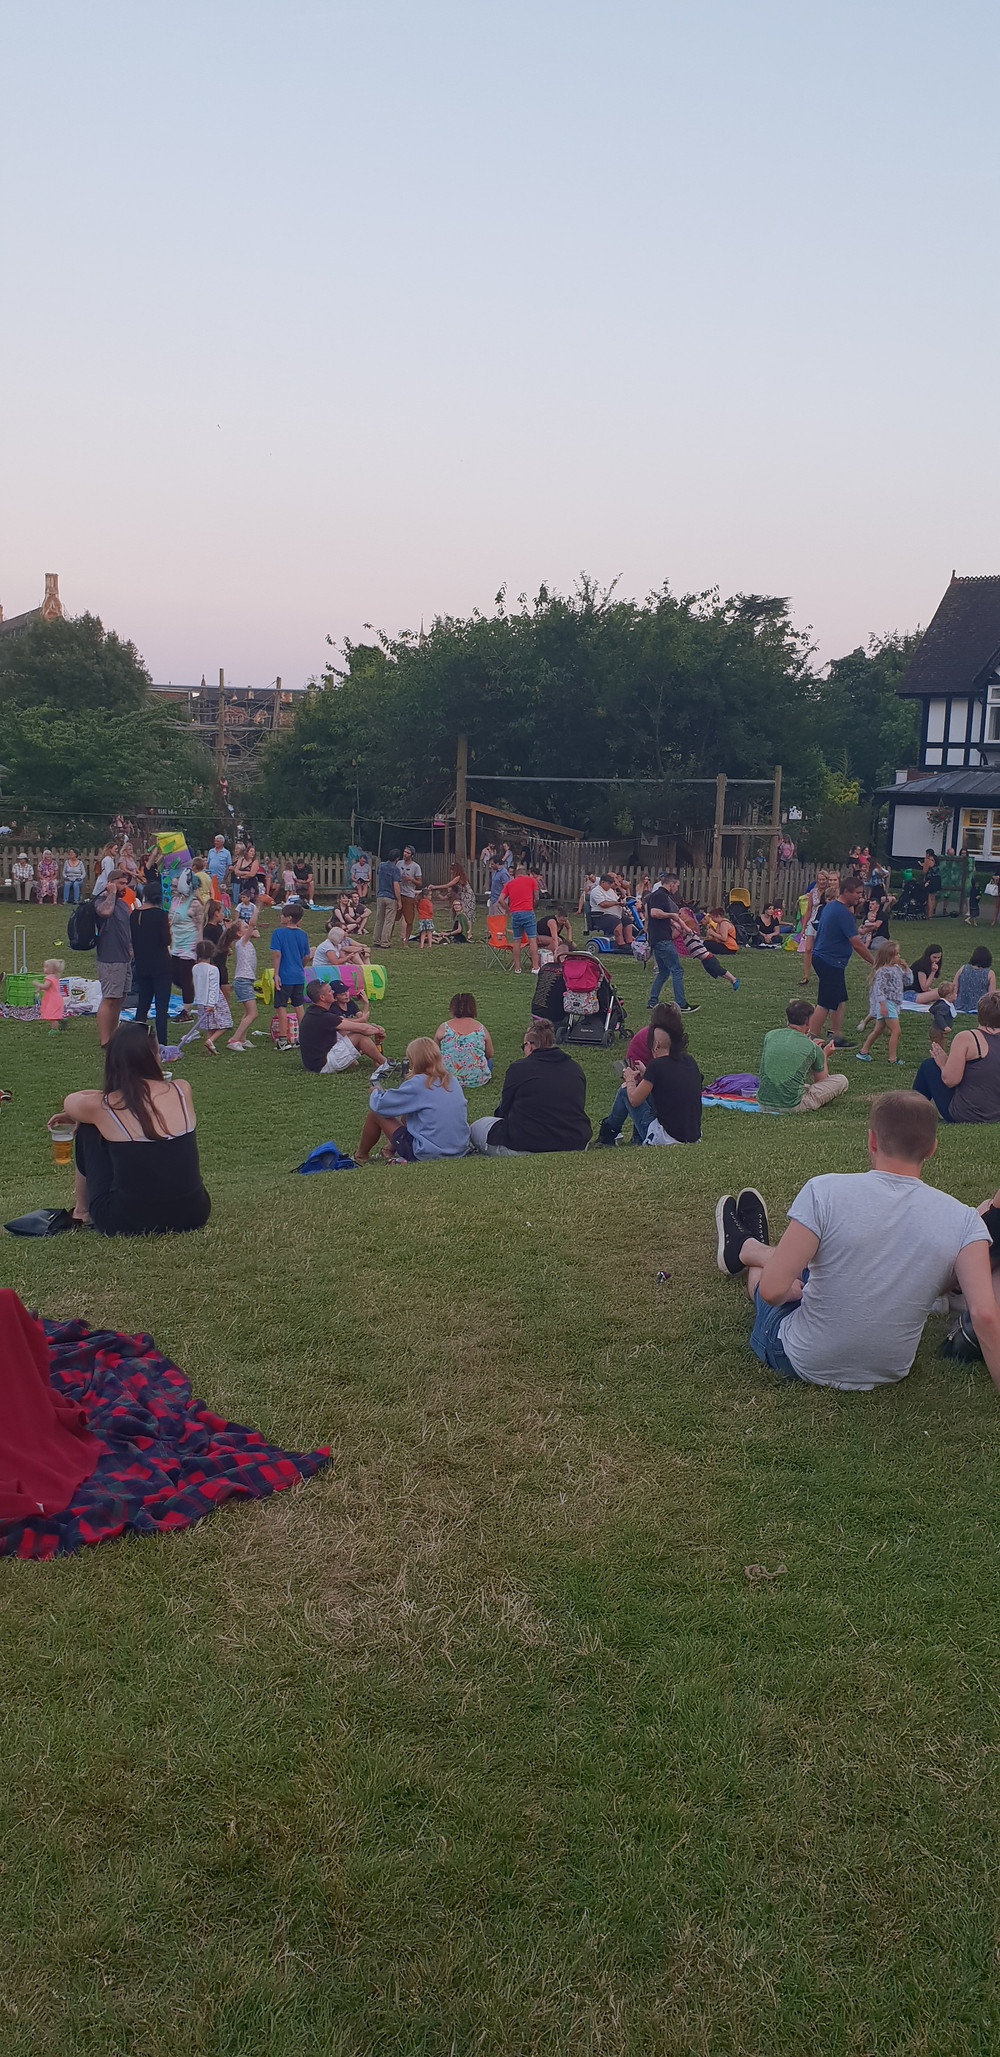 People sitting on the lawn